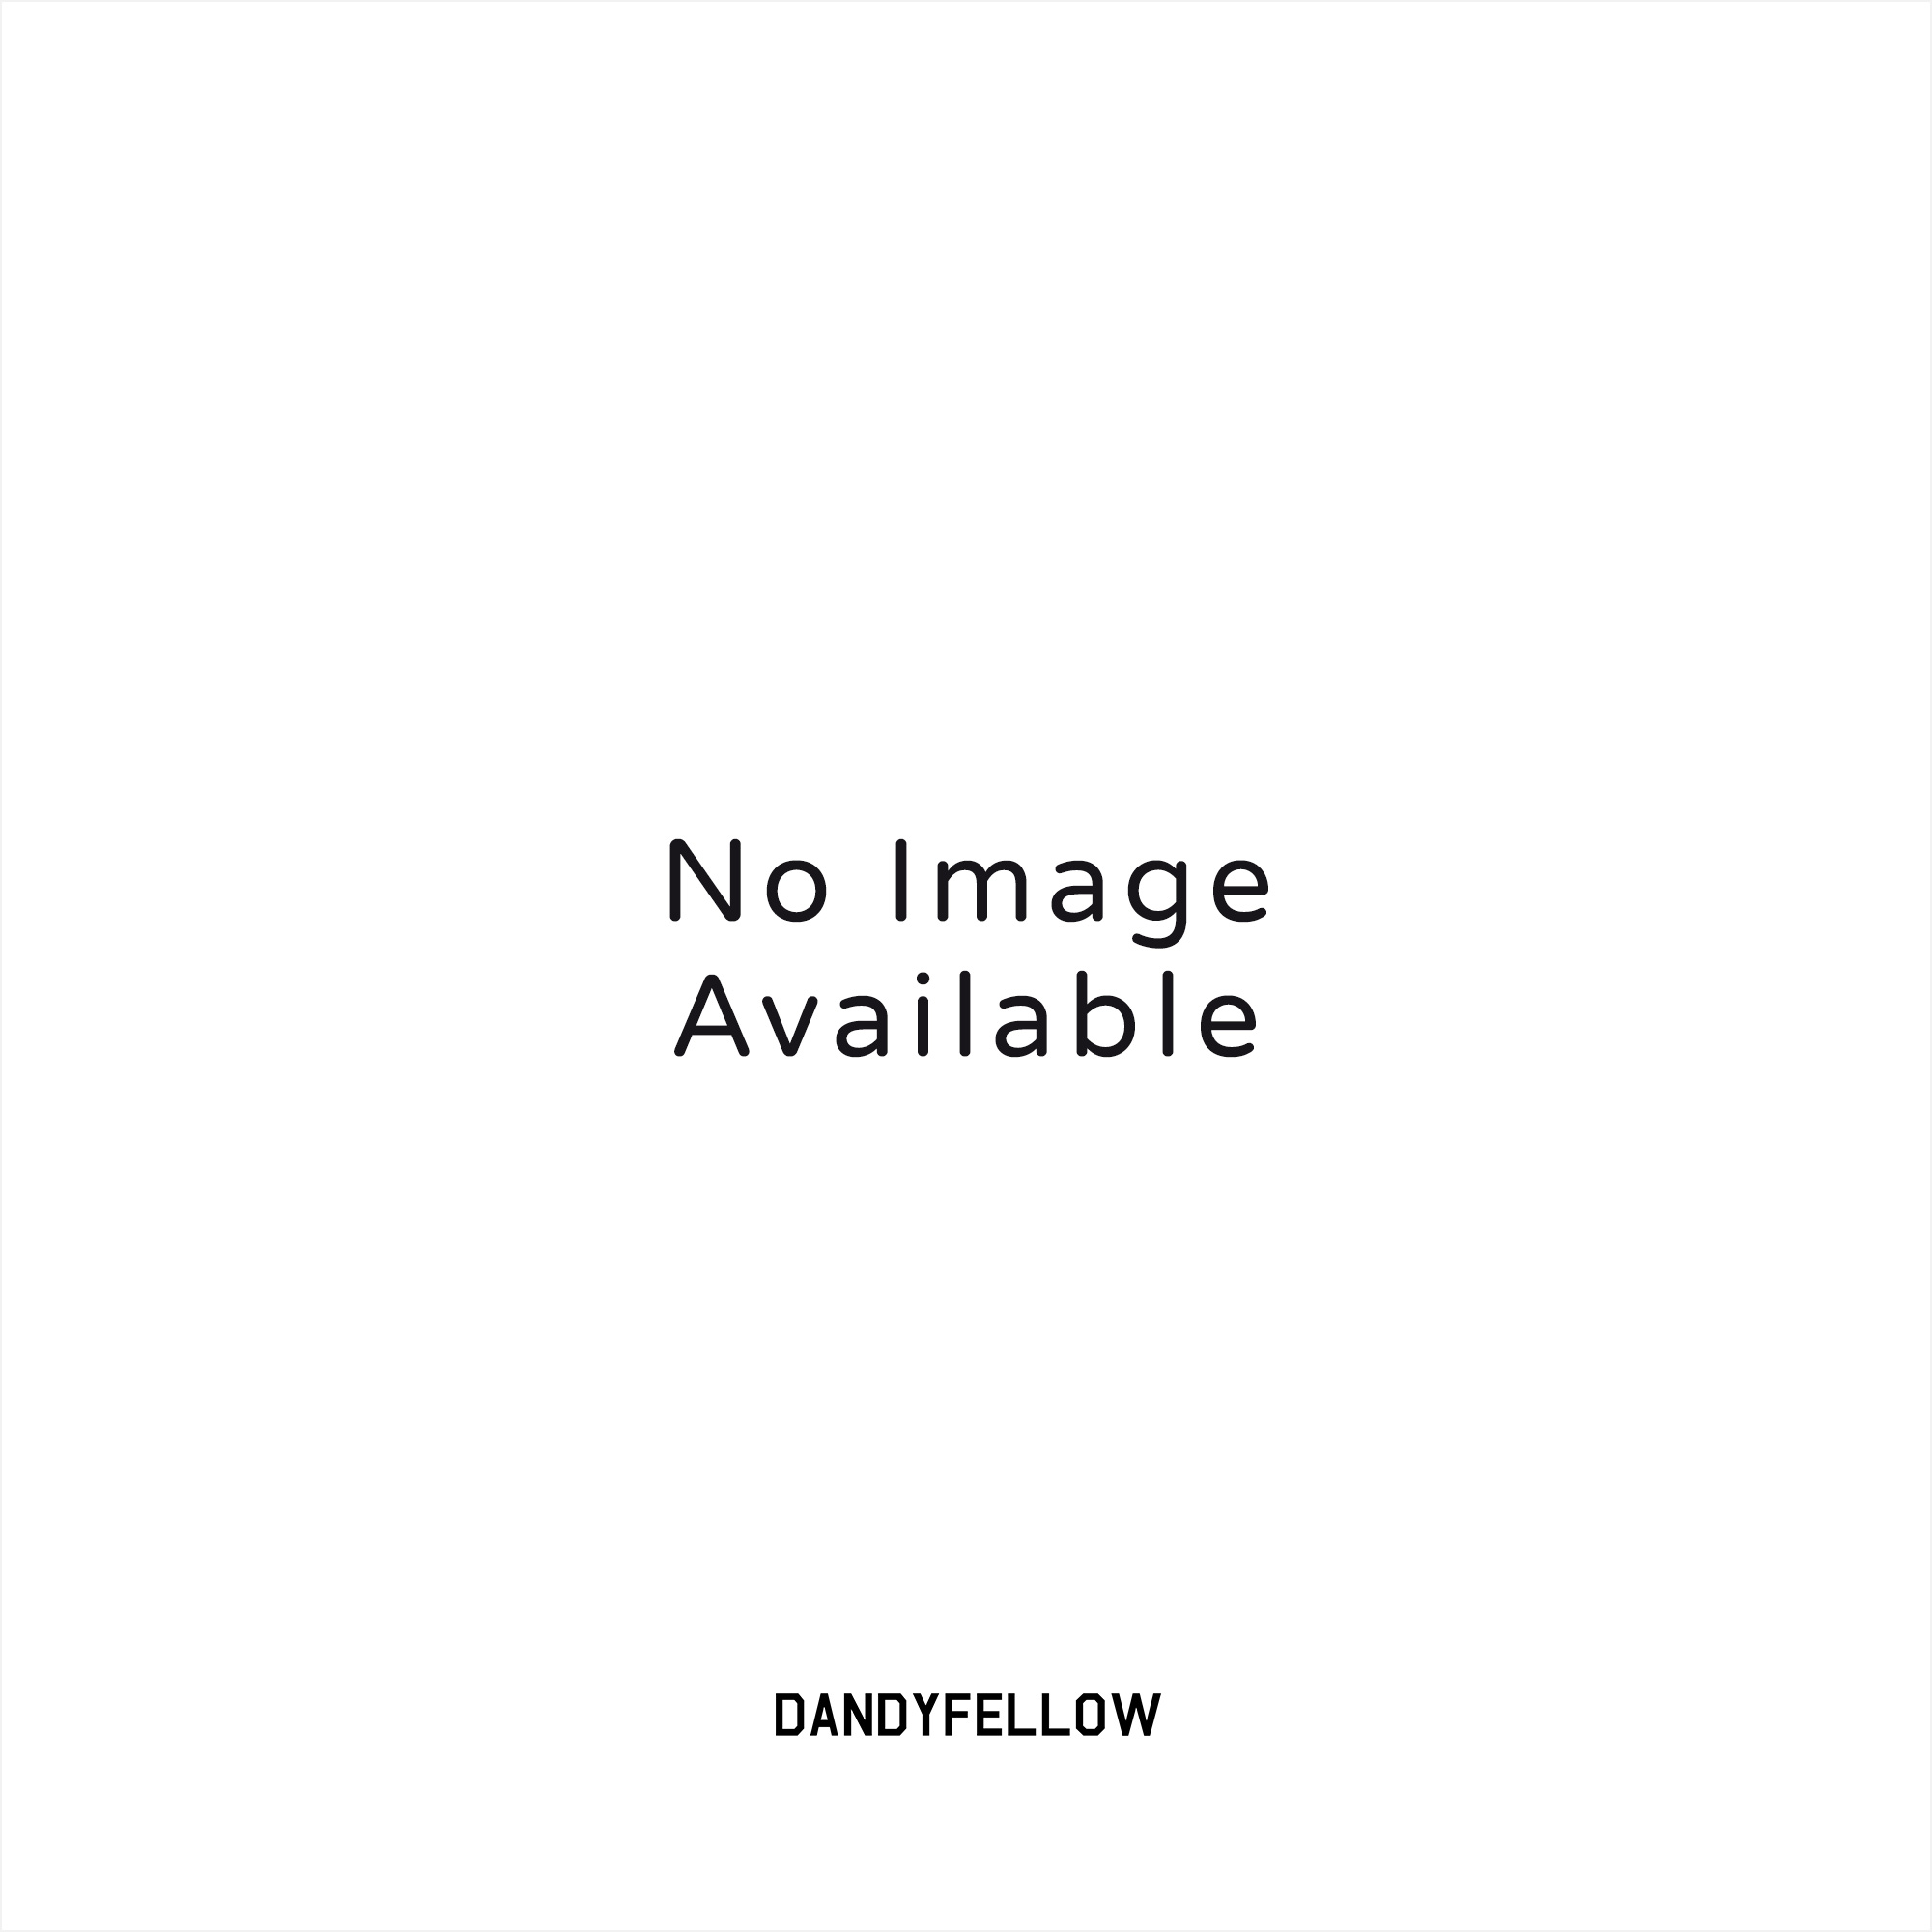 Clarks Originals Gtx Suede Wallabee Boot Black At Dandy Fellow